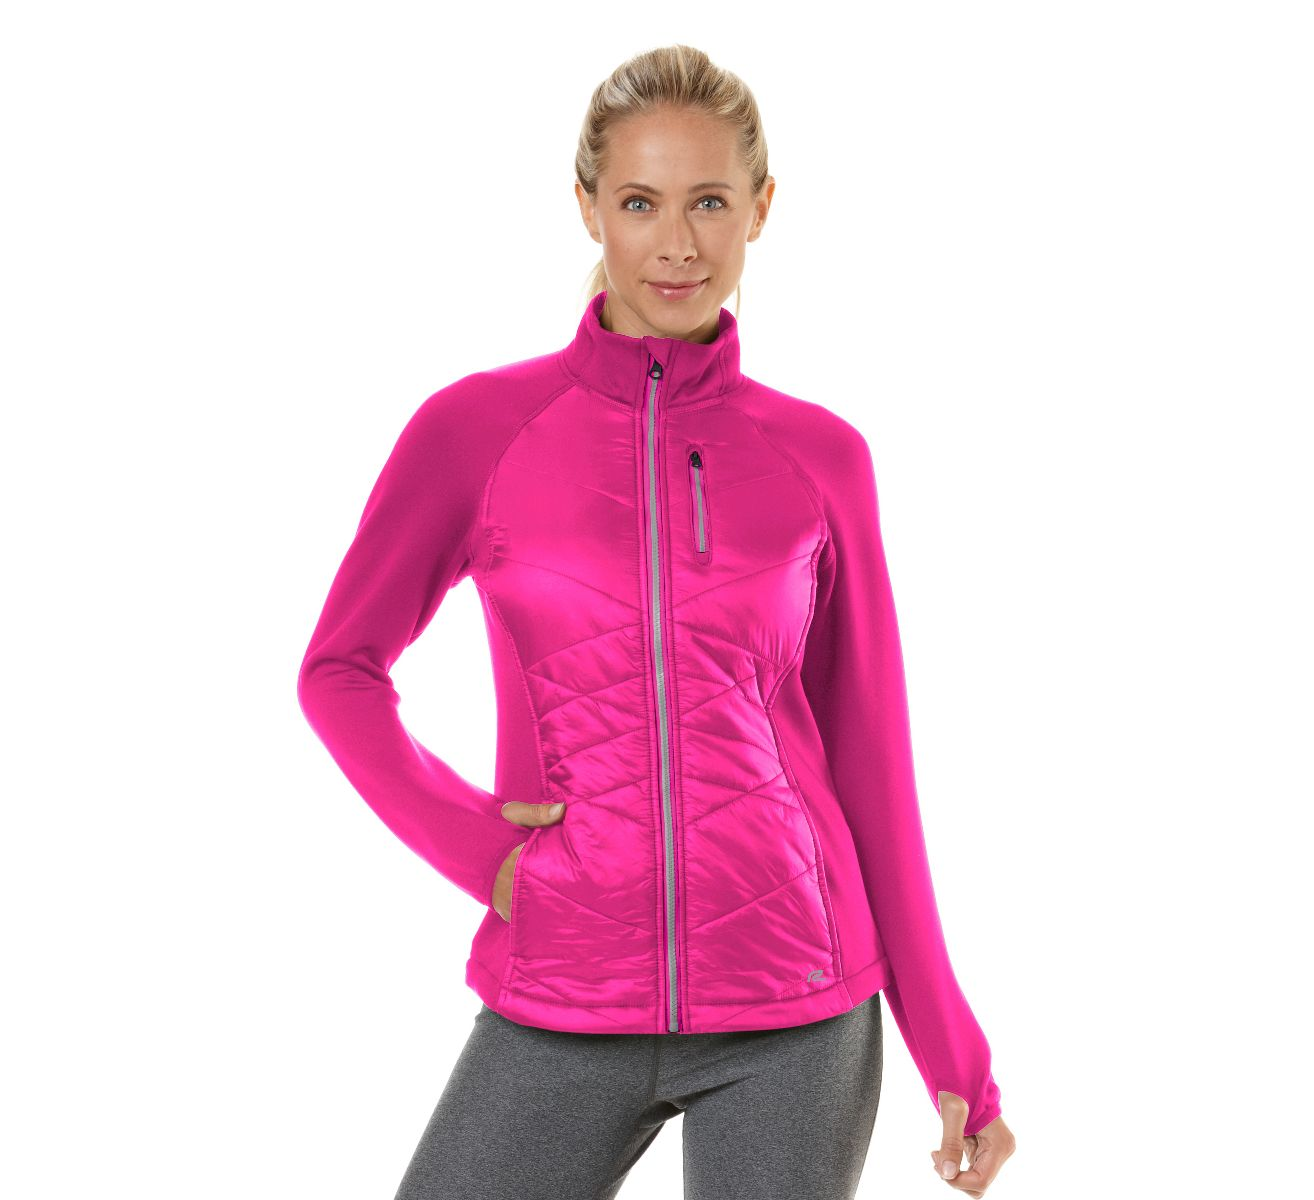 Womens Road Runner Sports Power Puff Jacket Outerwear Jackets at ...